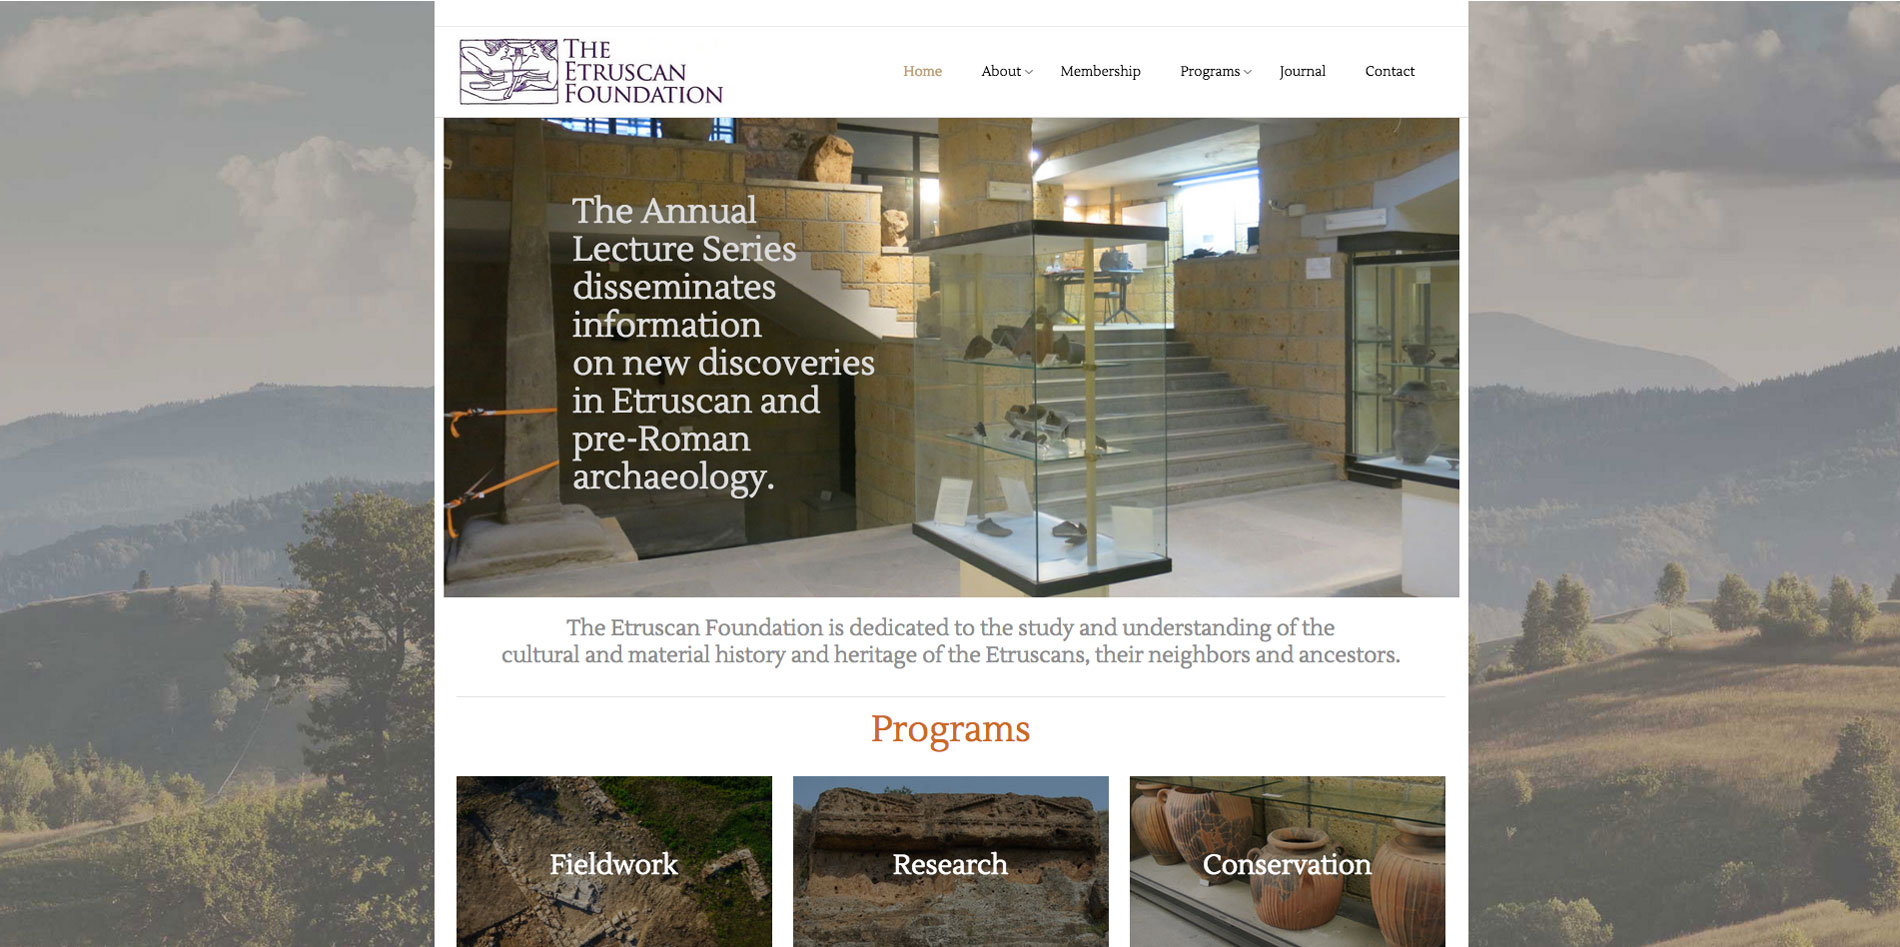 Website design home page 2 for Etruscan Foundation